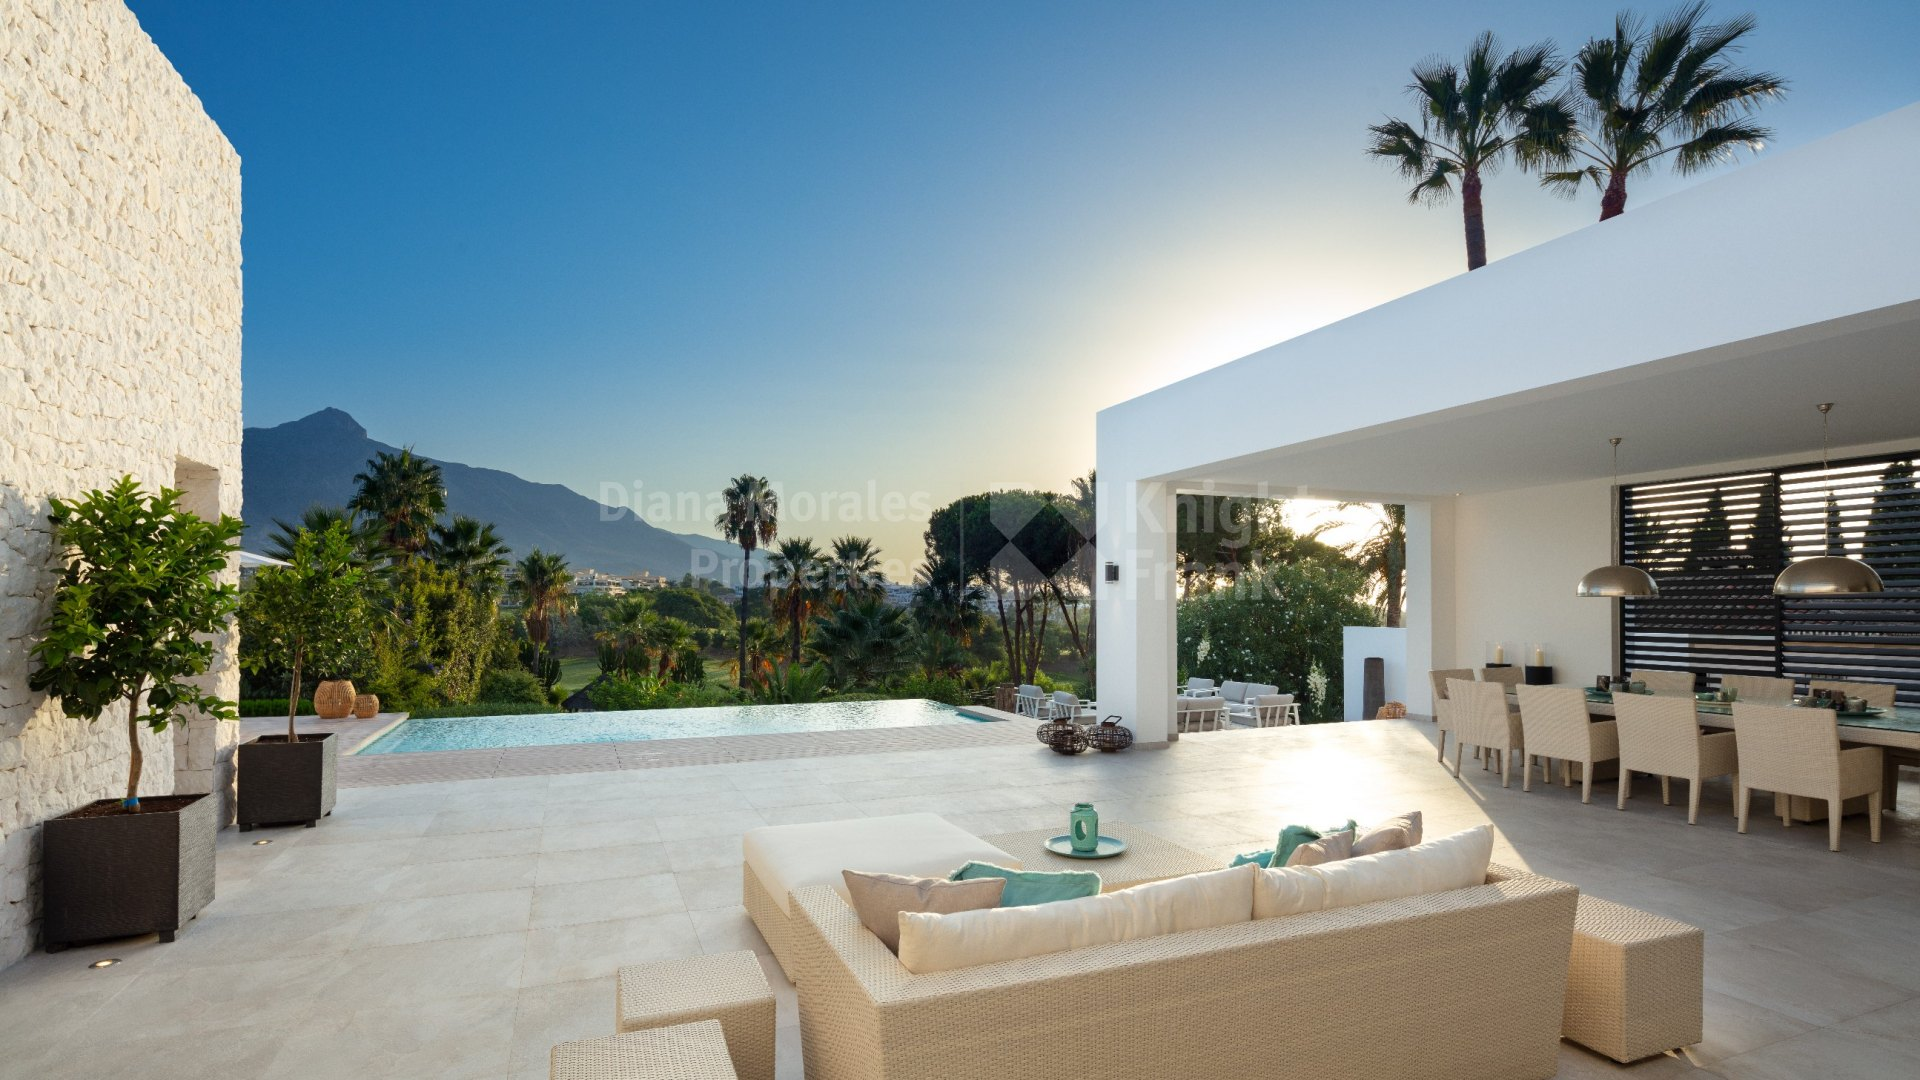 Las Brisas, Second-line golf modern villa in a quiet and private street